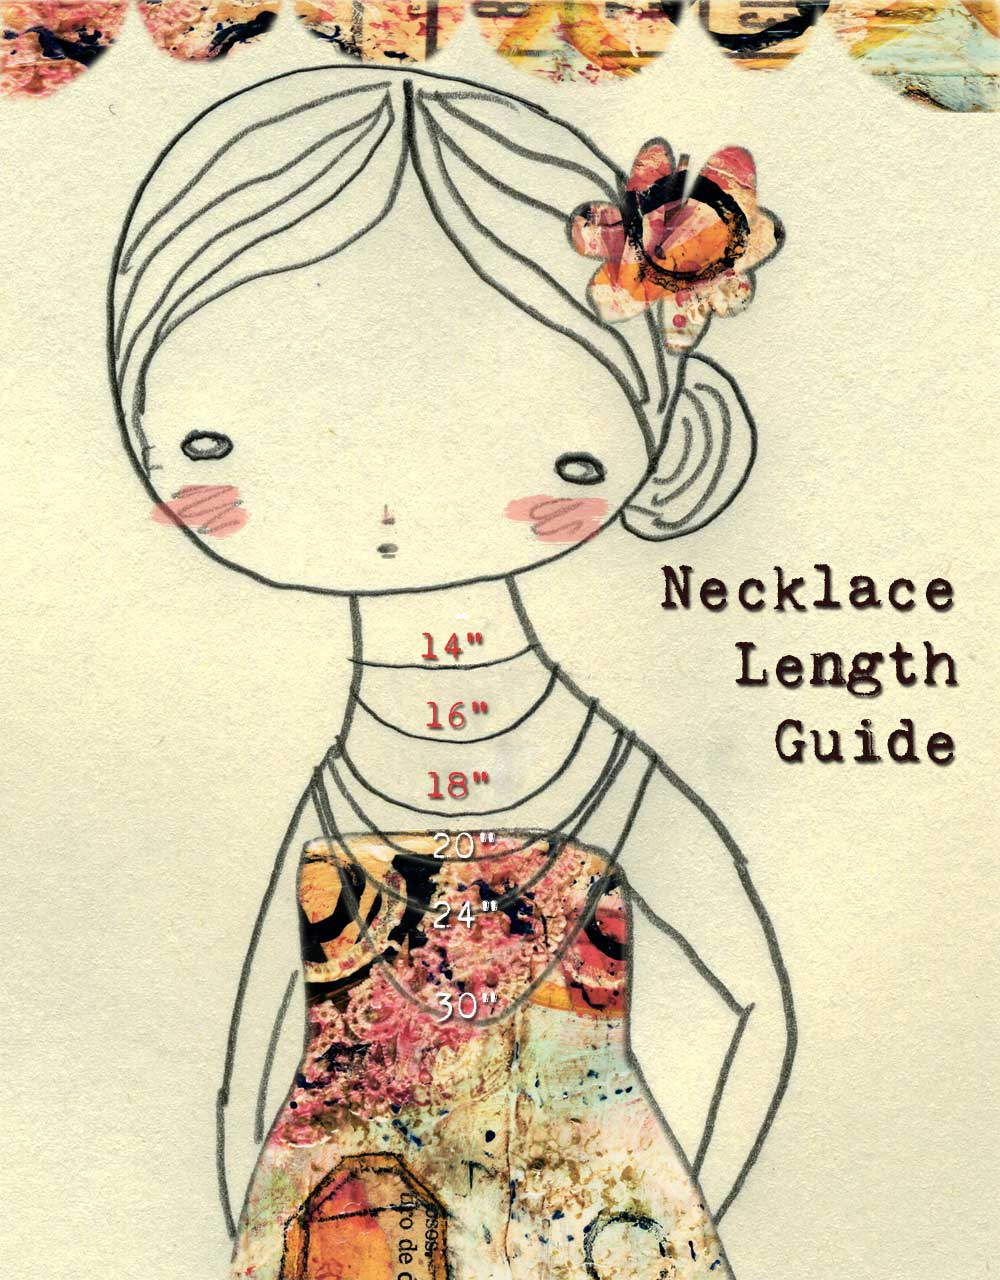 necklace length guide i need your help